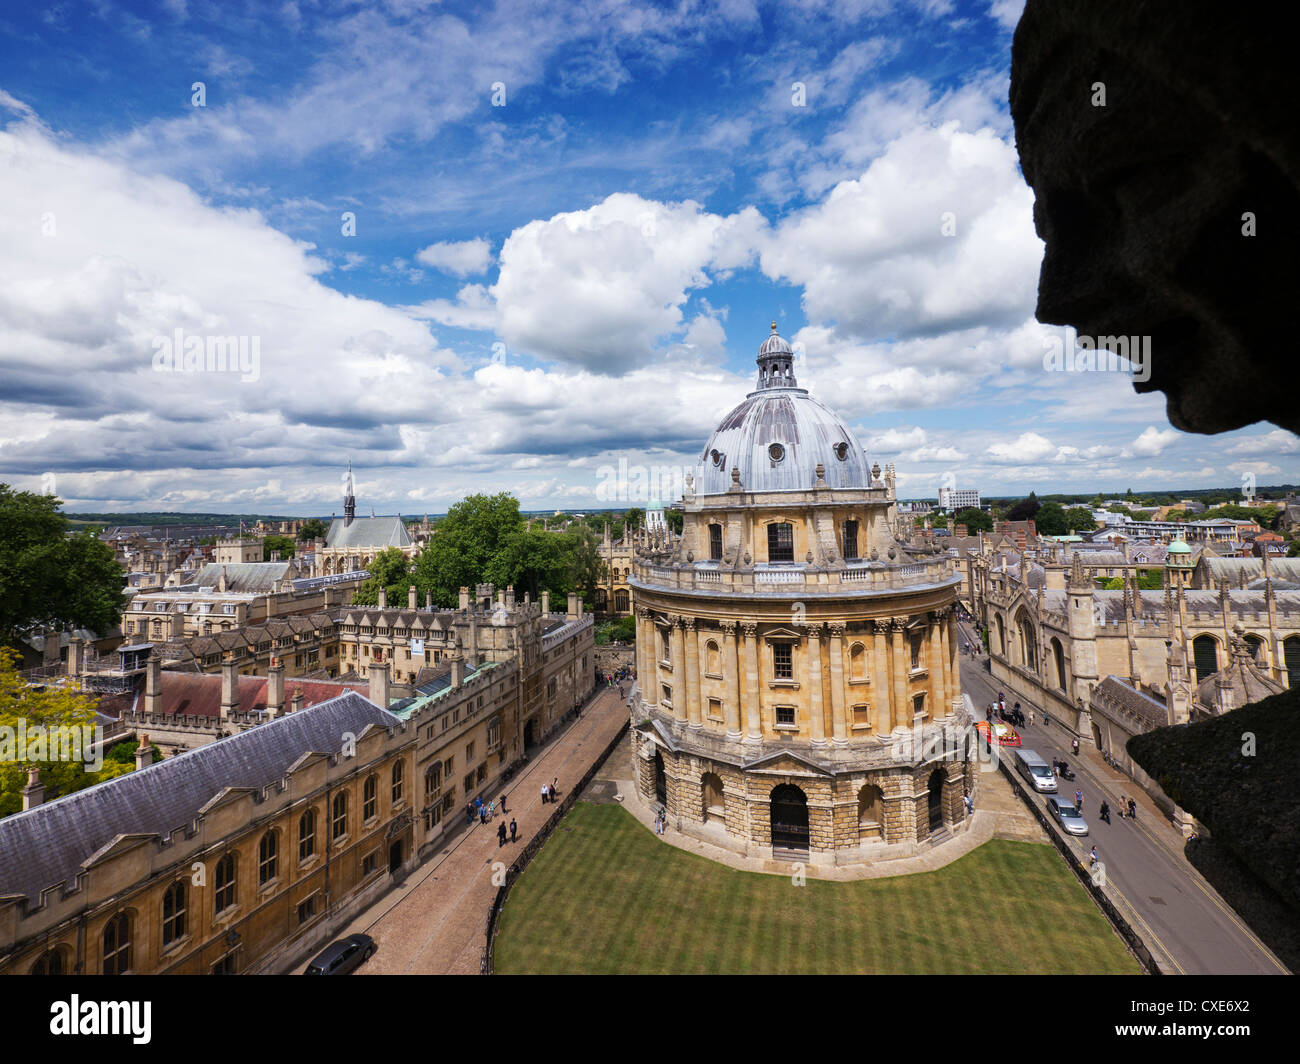 Portrait de Radcliffe Camera, Oxford, Oxfordshire, England, UK Photo Stock